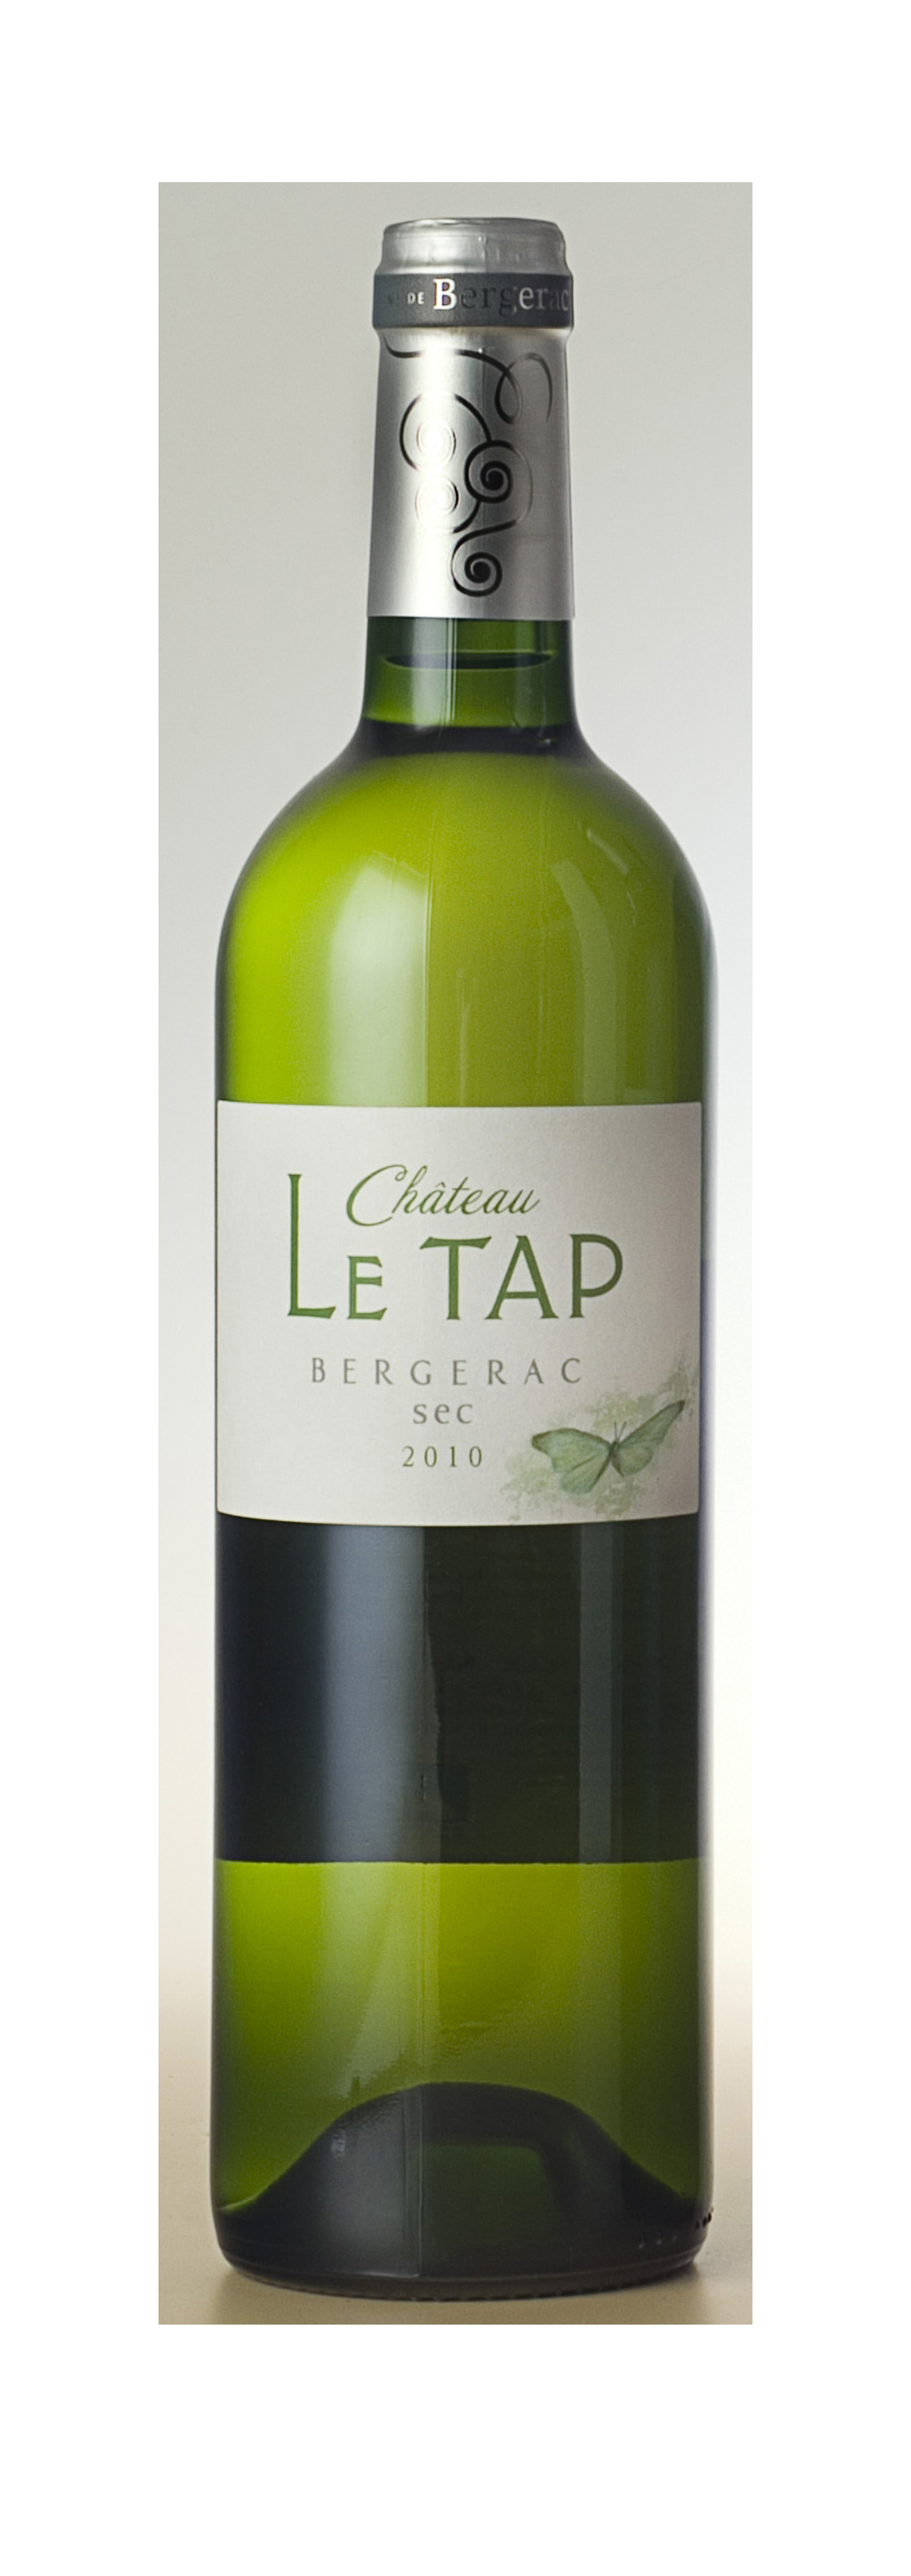 vin blanc sec bergerac 2011 ch teau le tap. Black Bedroom Furniture Sets. Home Design Ideas